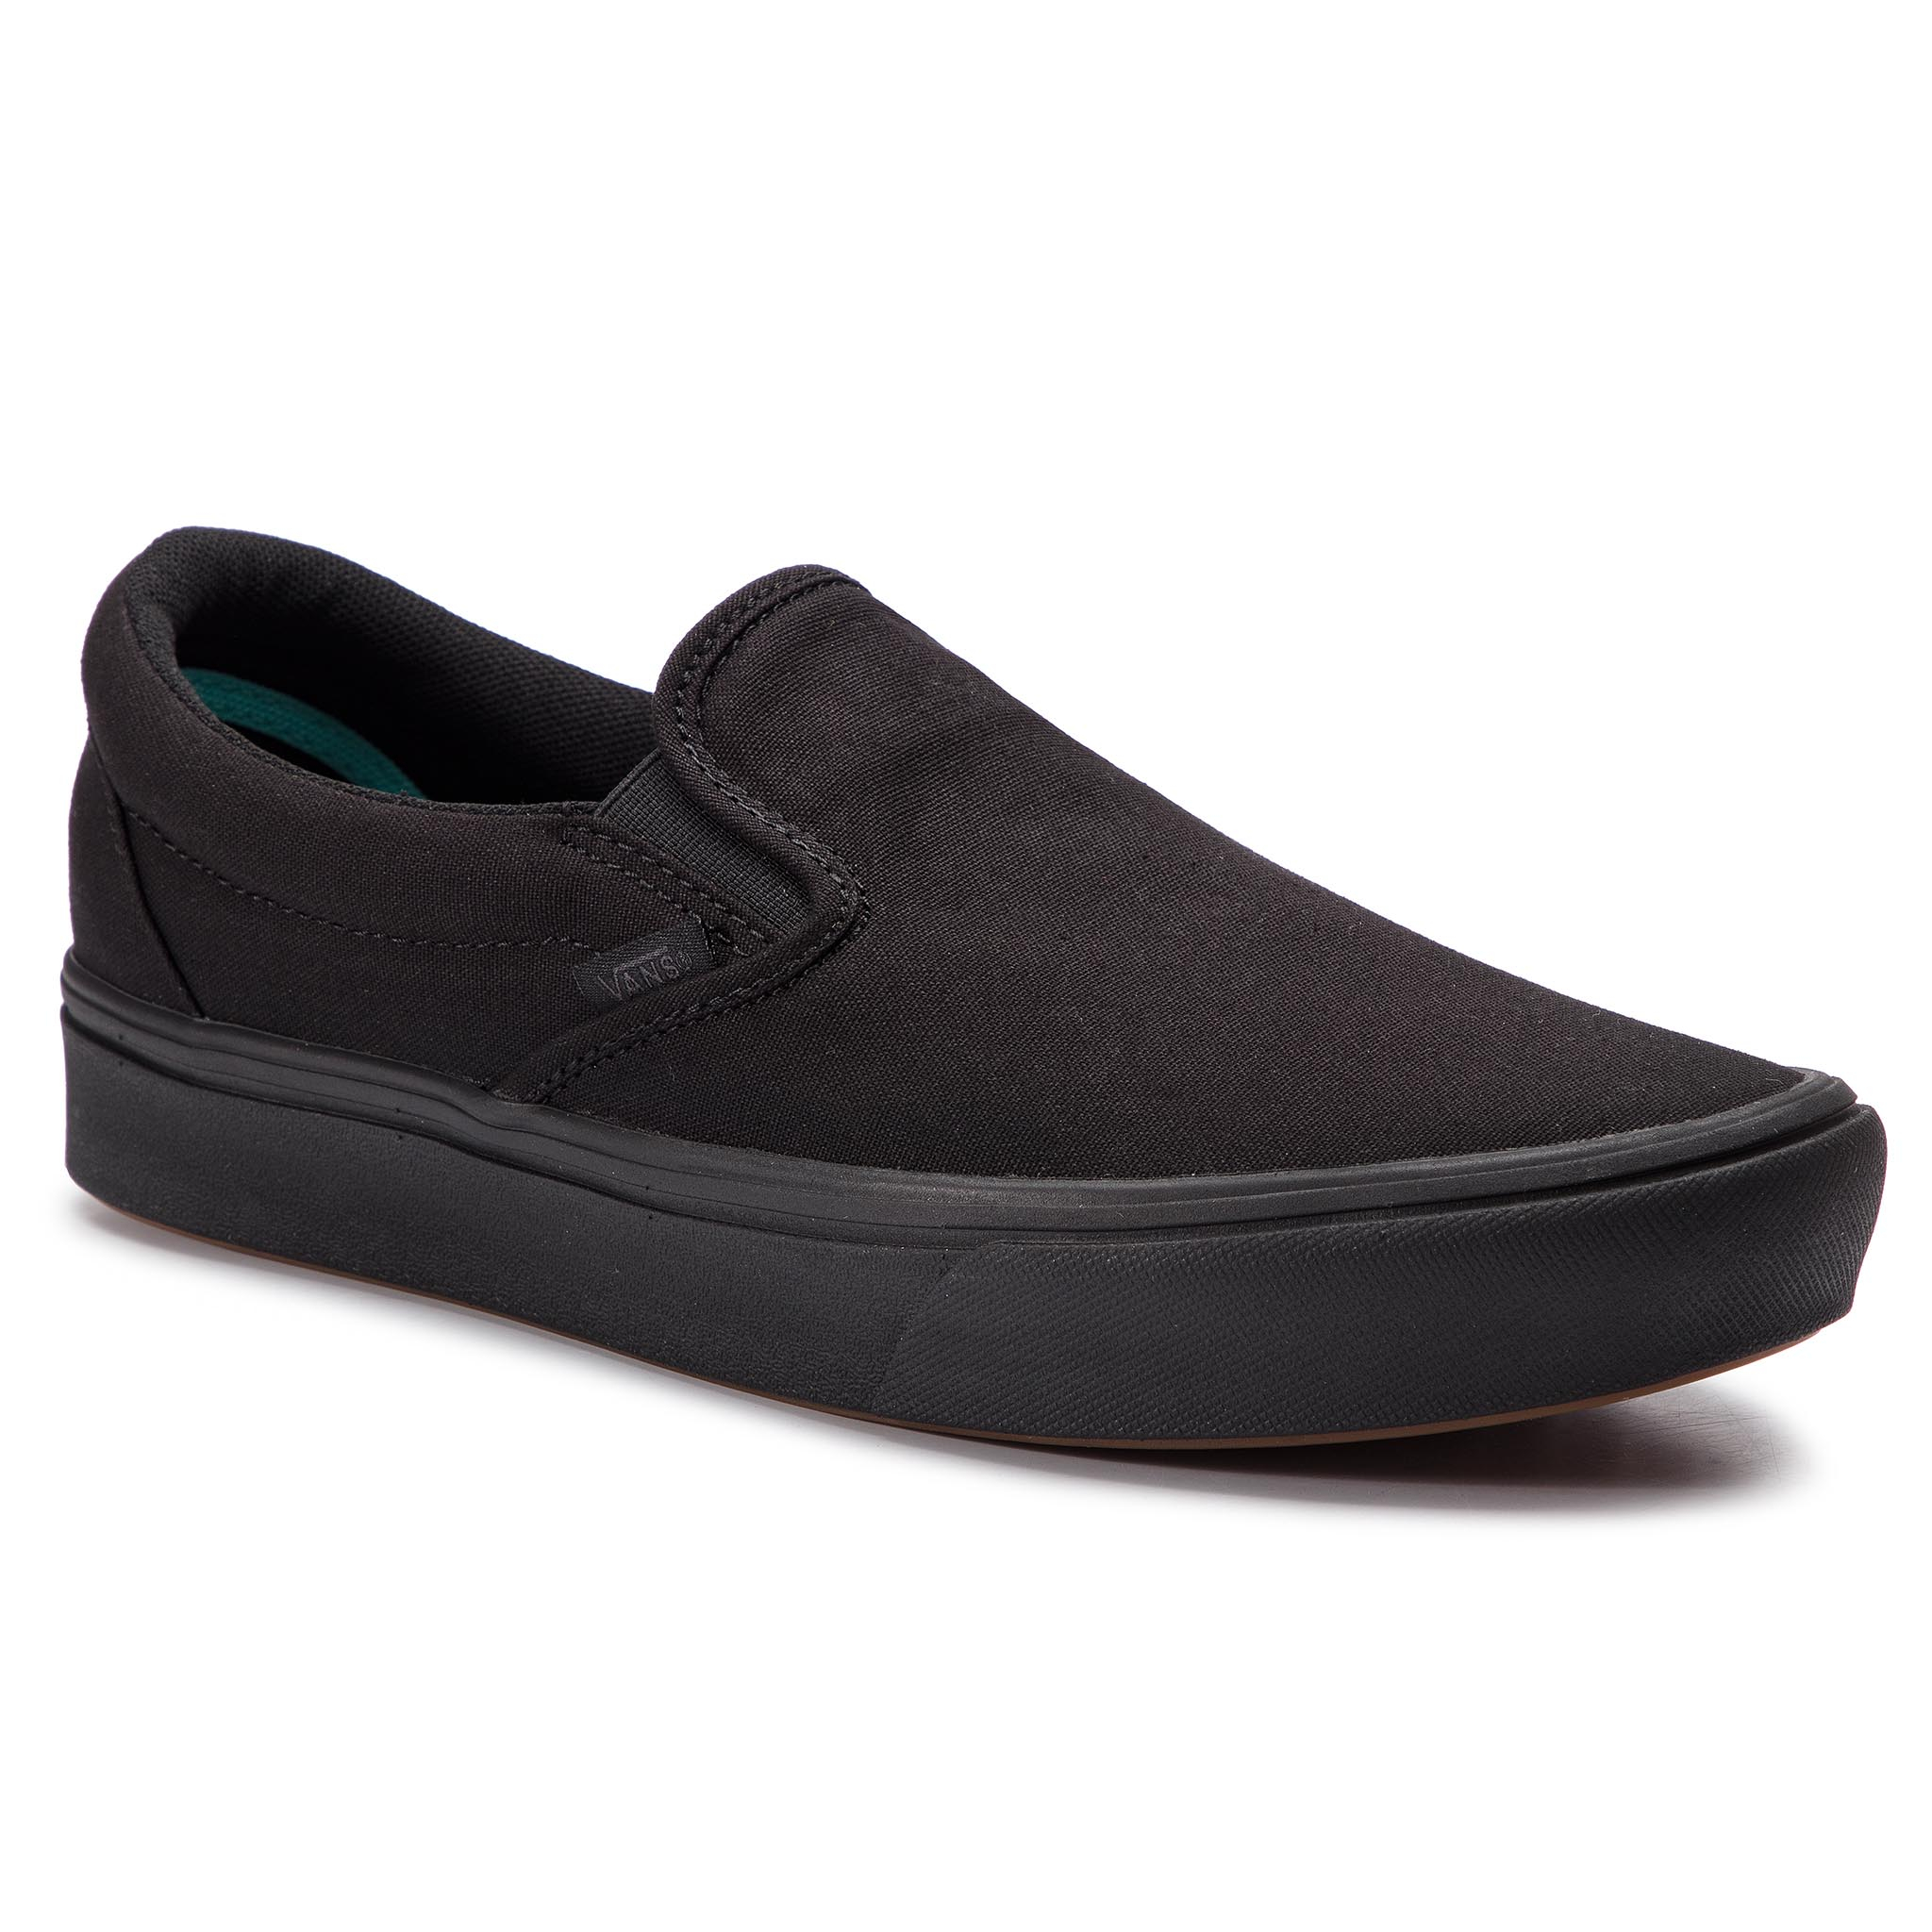 Teniși Vans - Comfycush Slip-On Vn0a3wmdvnd1 (Classic) Black/Black imagine epantofi.ro 2021